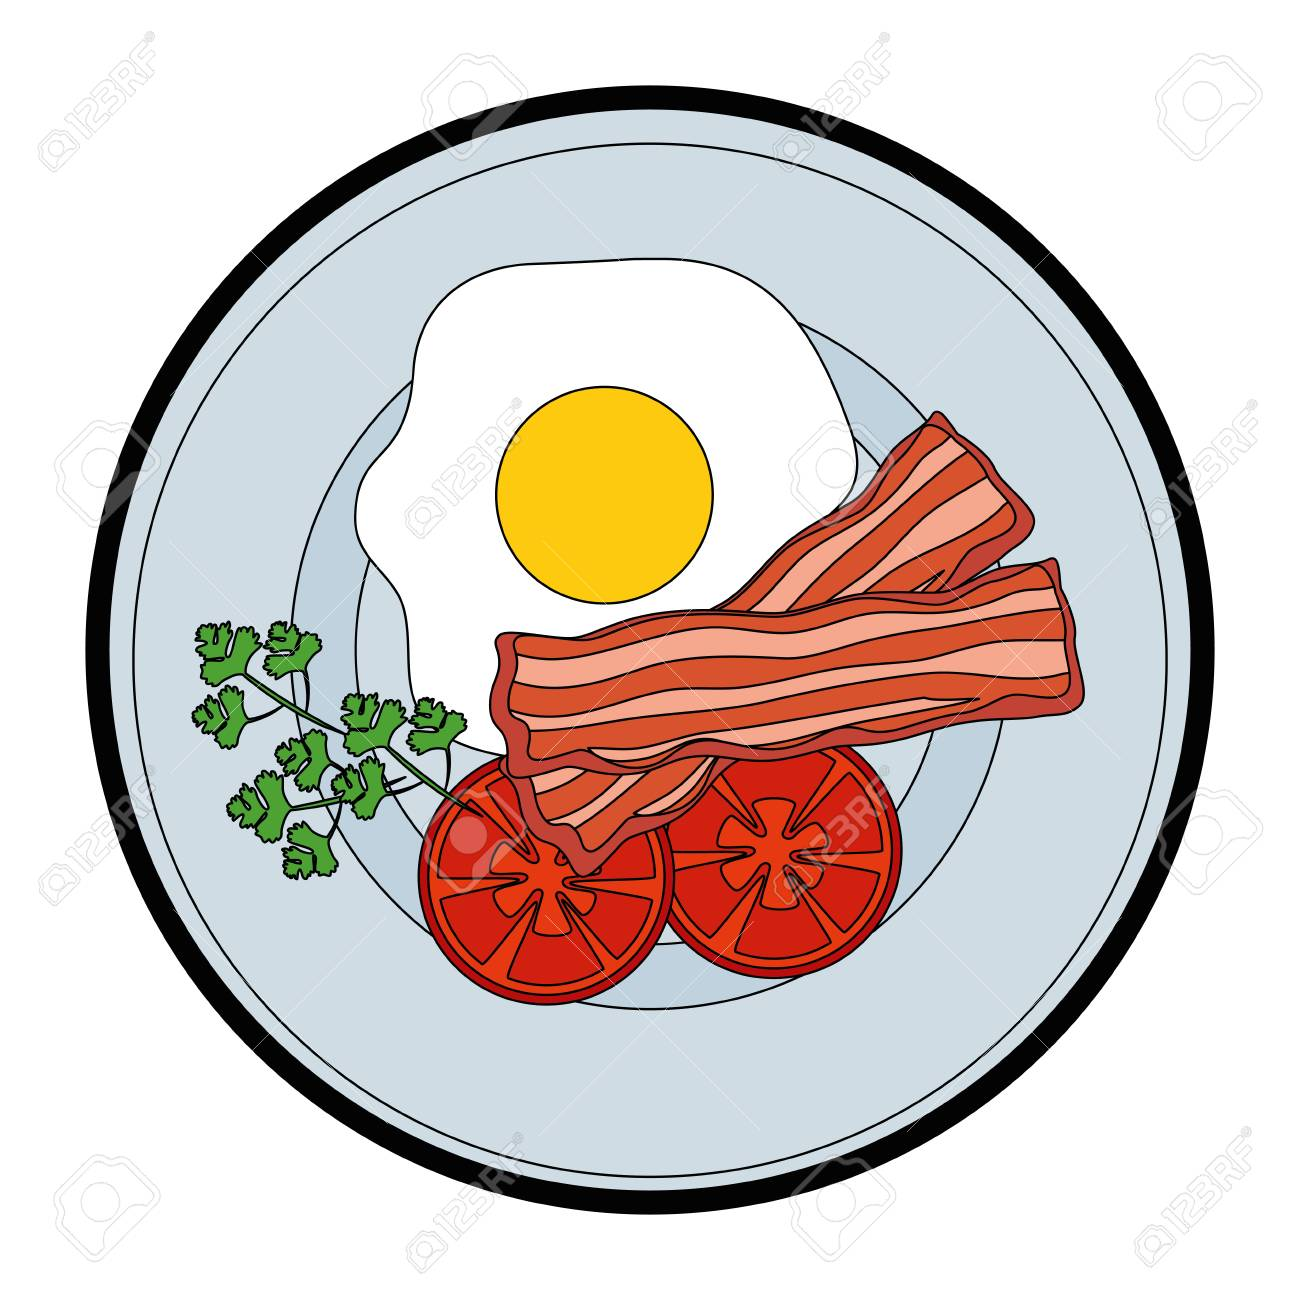 Plate With Breakfast Food Icon Over White Background Vector Illustration Royalty Free Cliparts Vectors And Stock Illustration Image 83818895